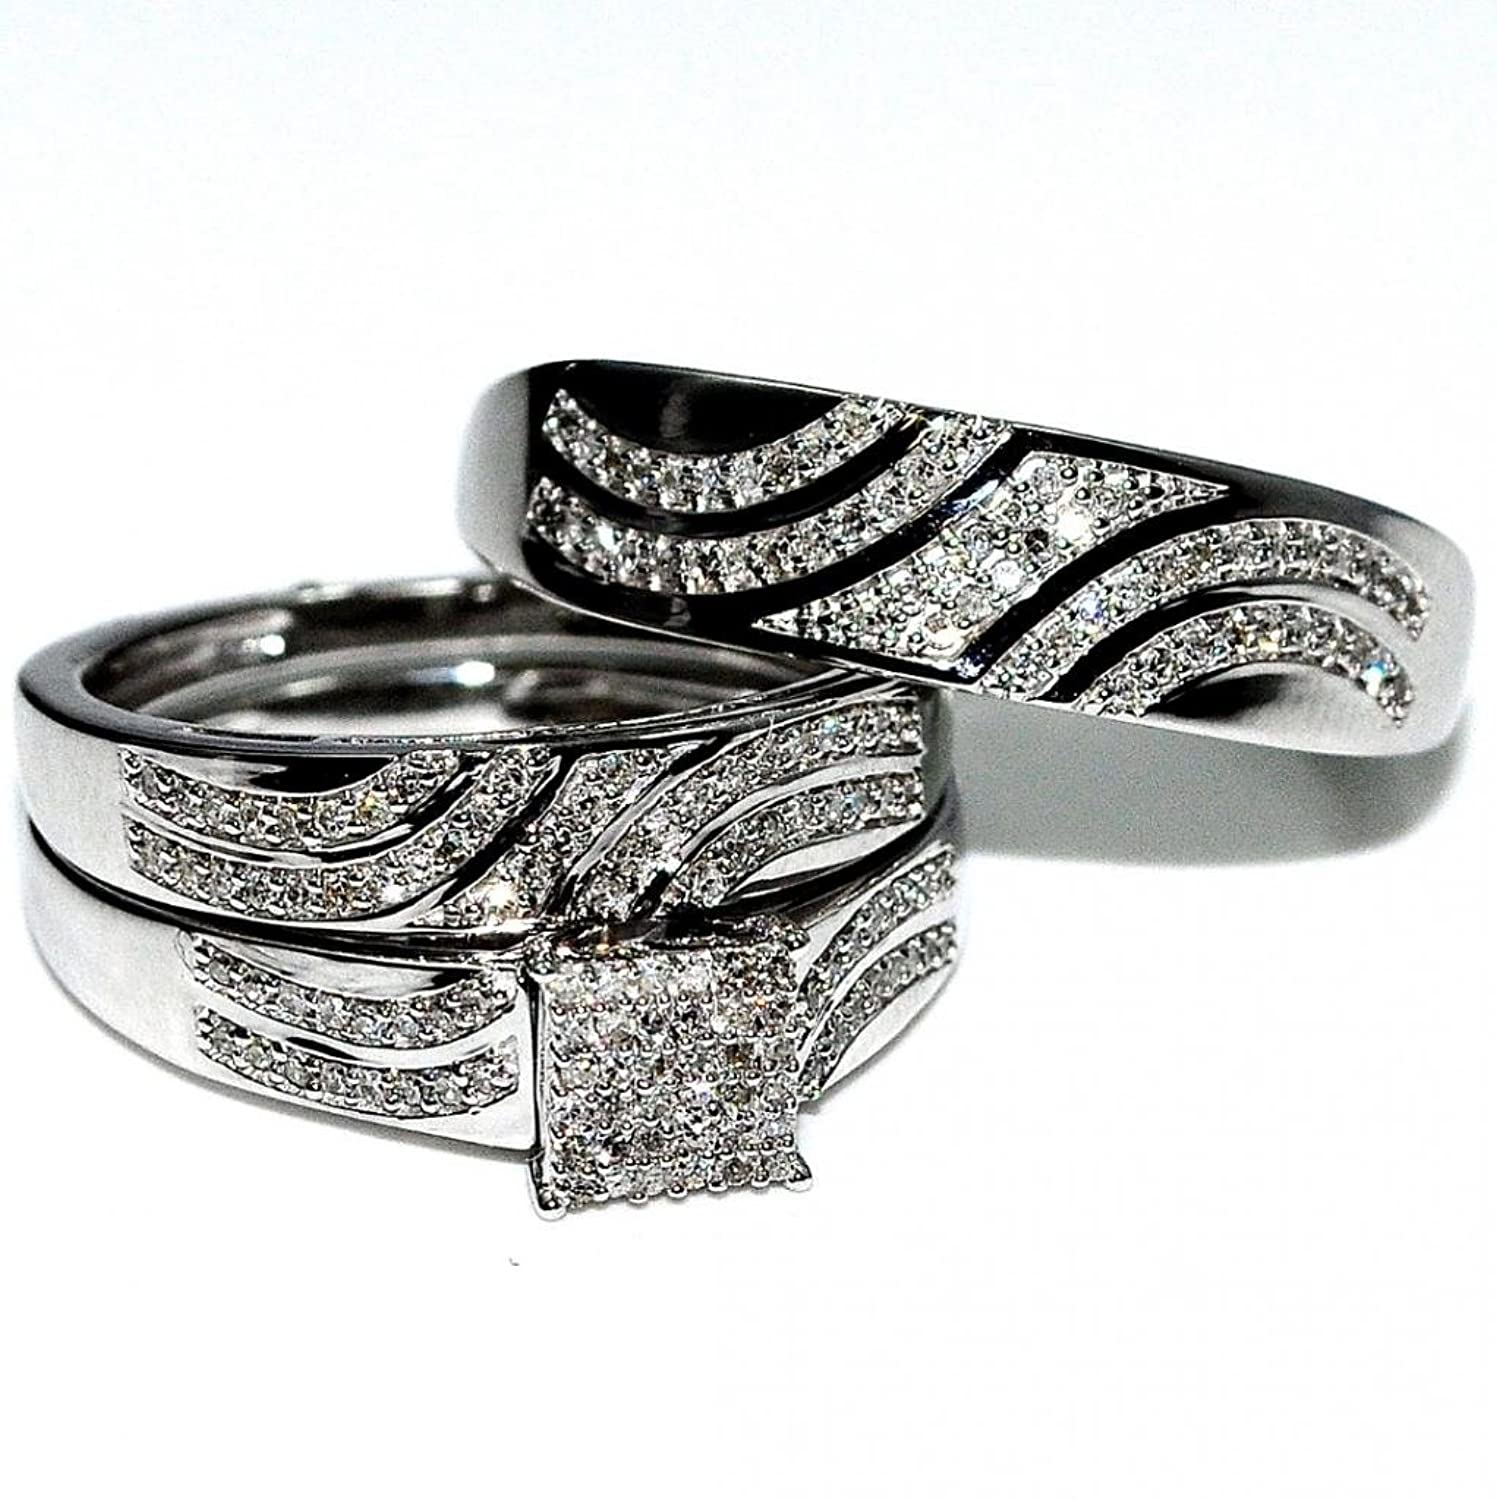 amazoncom his and her rings trio wedding set white gold 04cttw diamonds square topij i2i3 jewelry - Wedding Rings Amazon